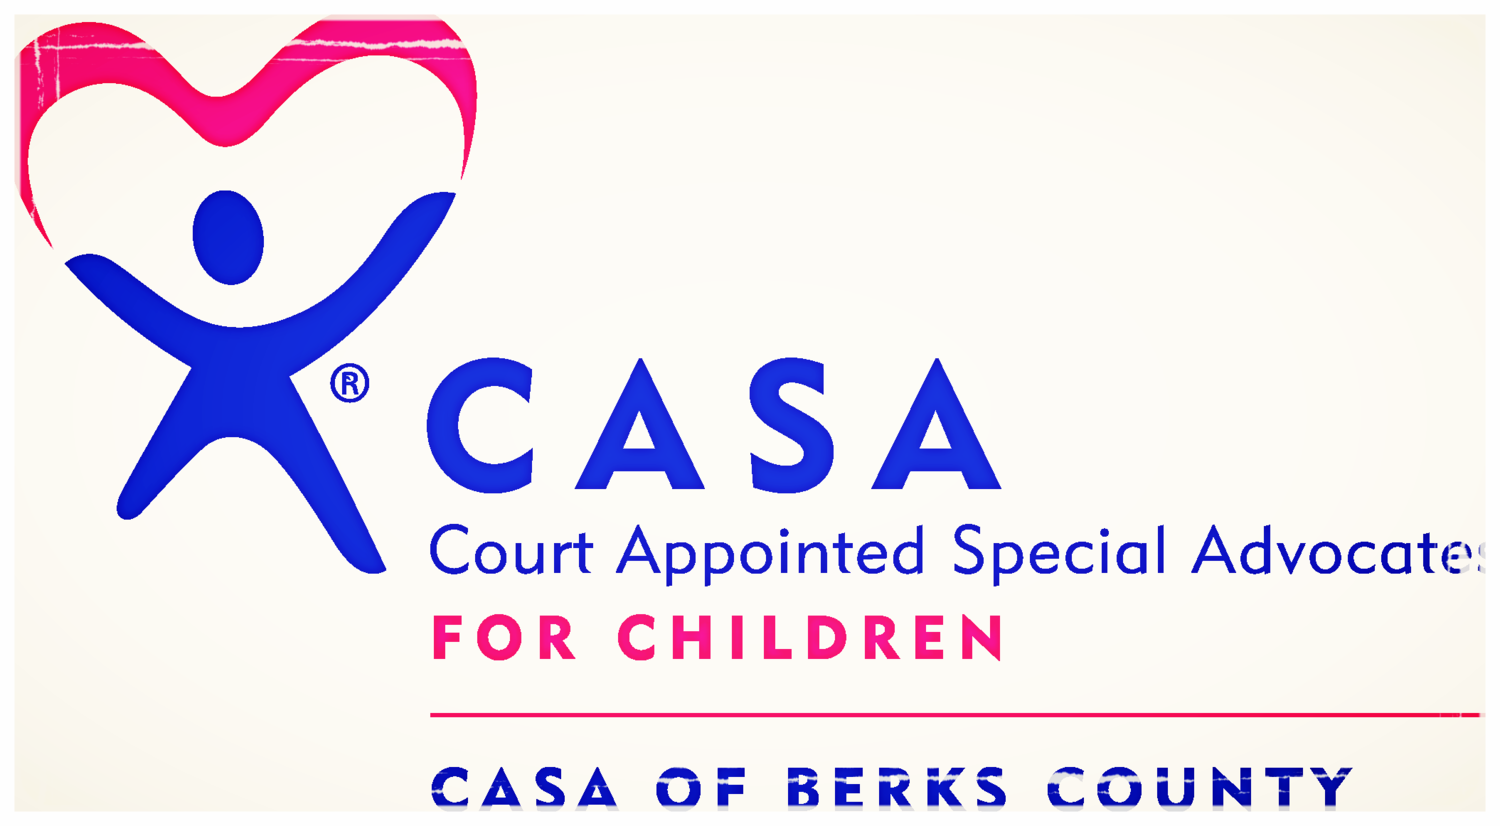 CASA of Berks County